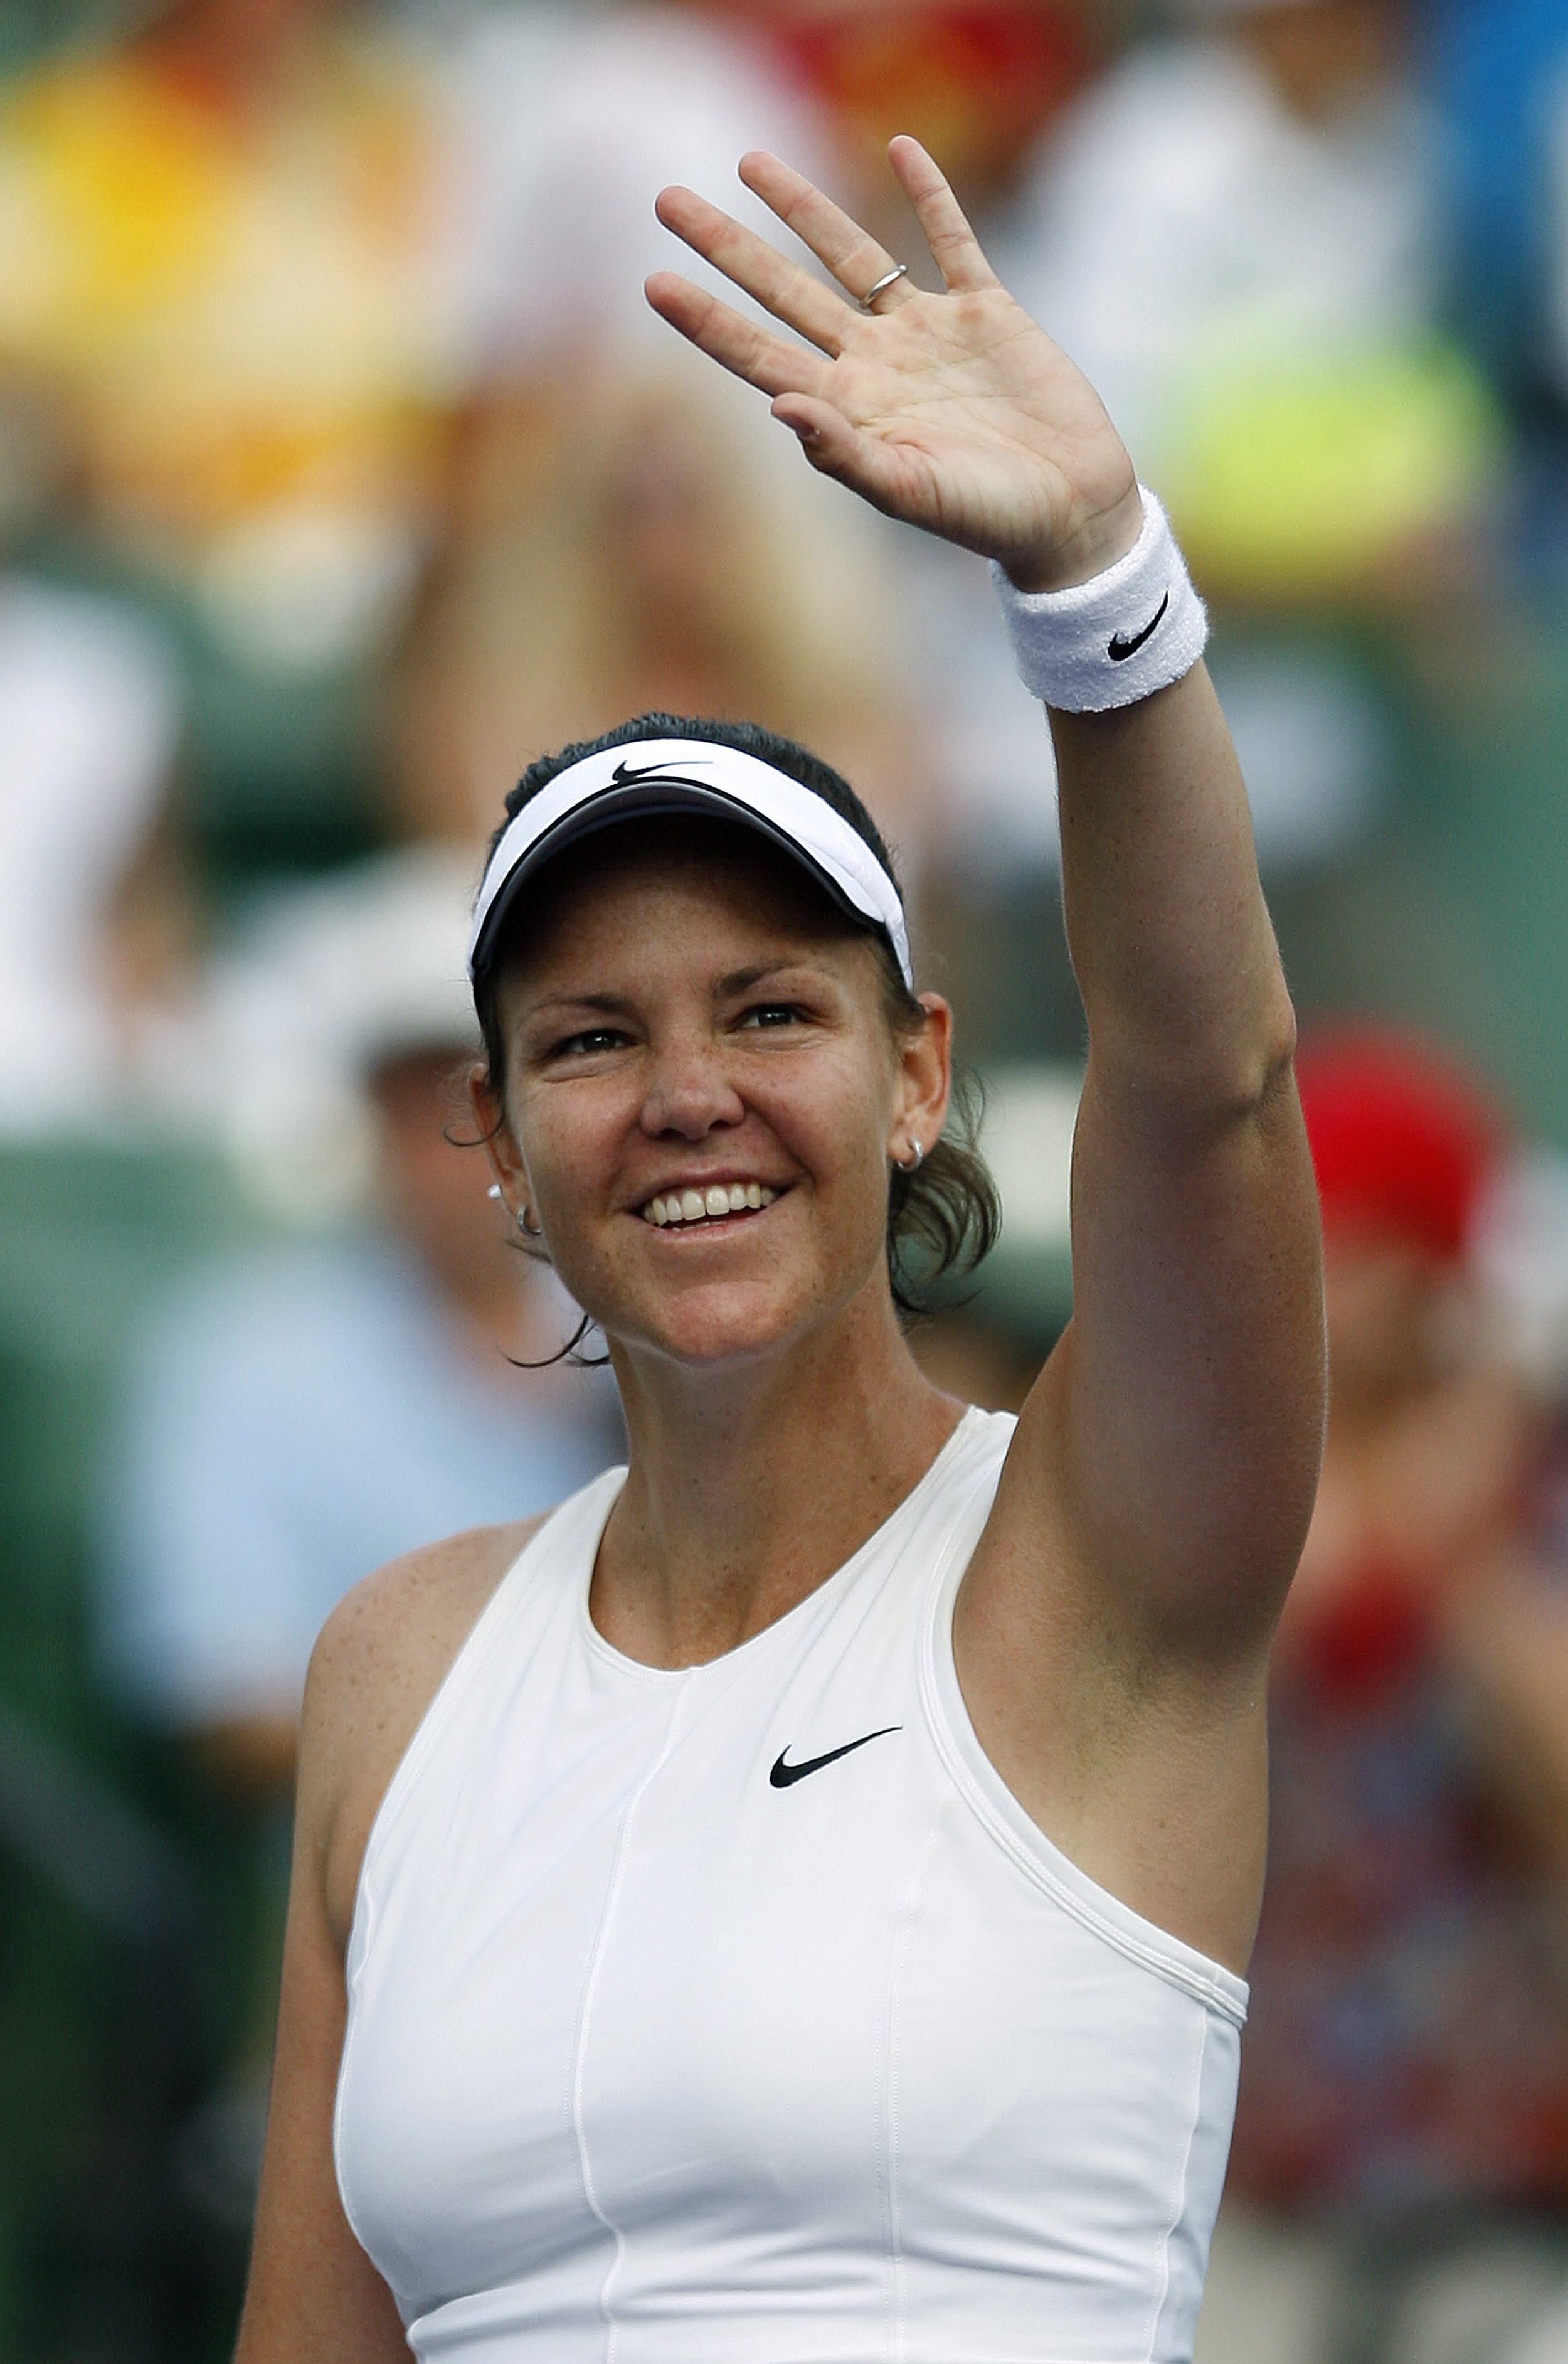 Lindsay Davenport waves after winning her match against Ana Ivanovic at the Sony Ericsson Open tennis tournament in Key Biscayne, Florida on Sunday.